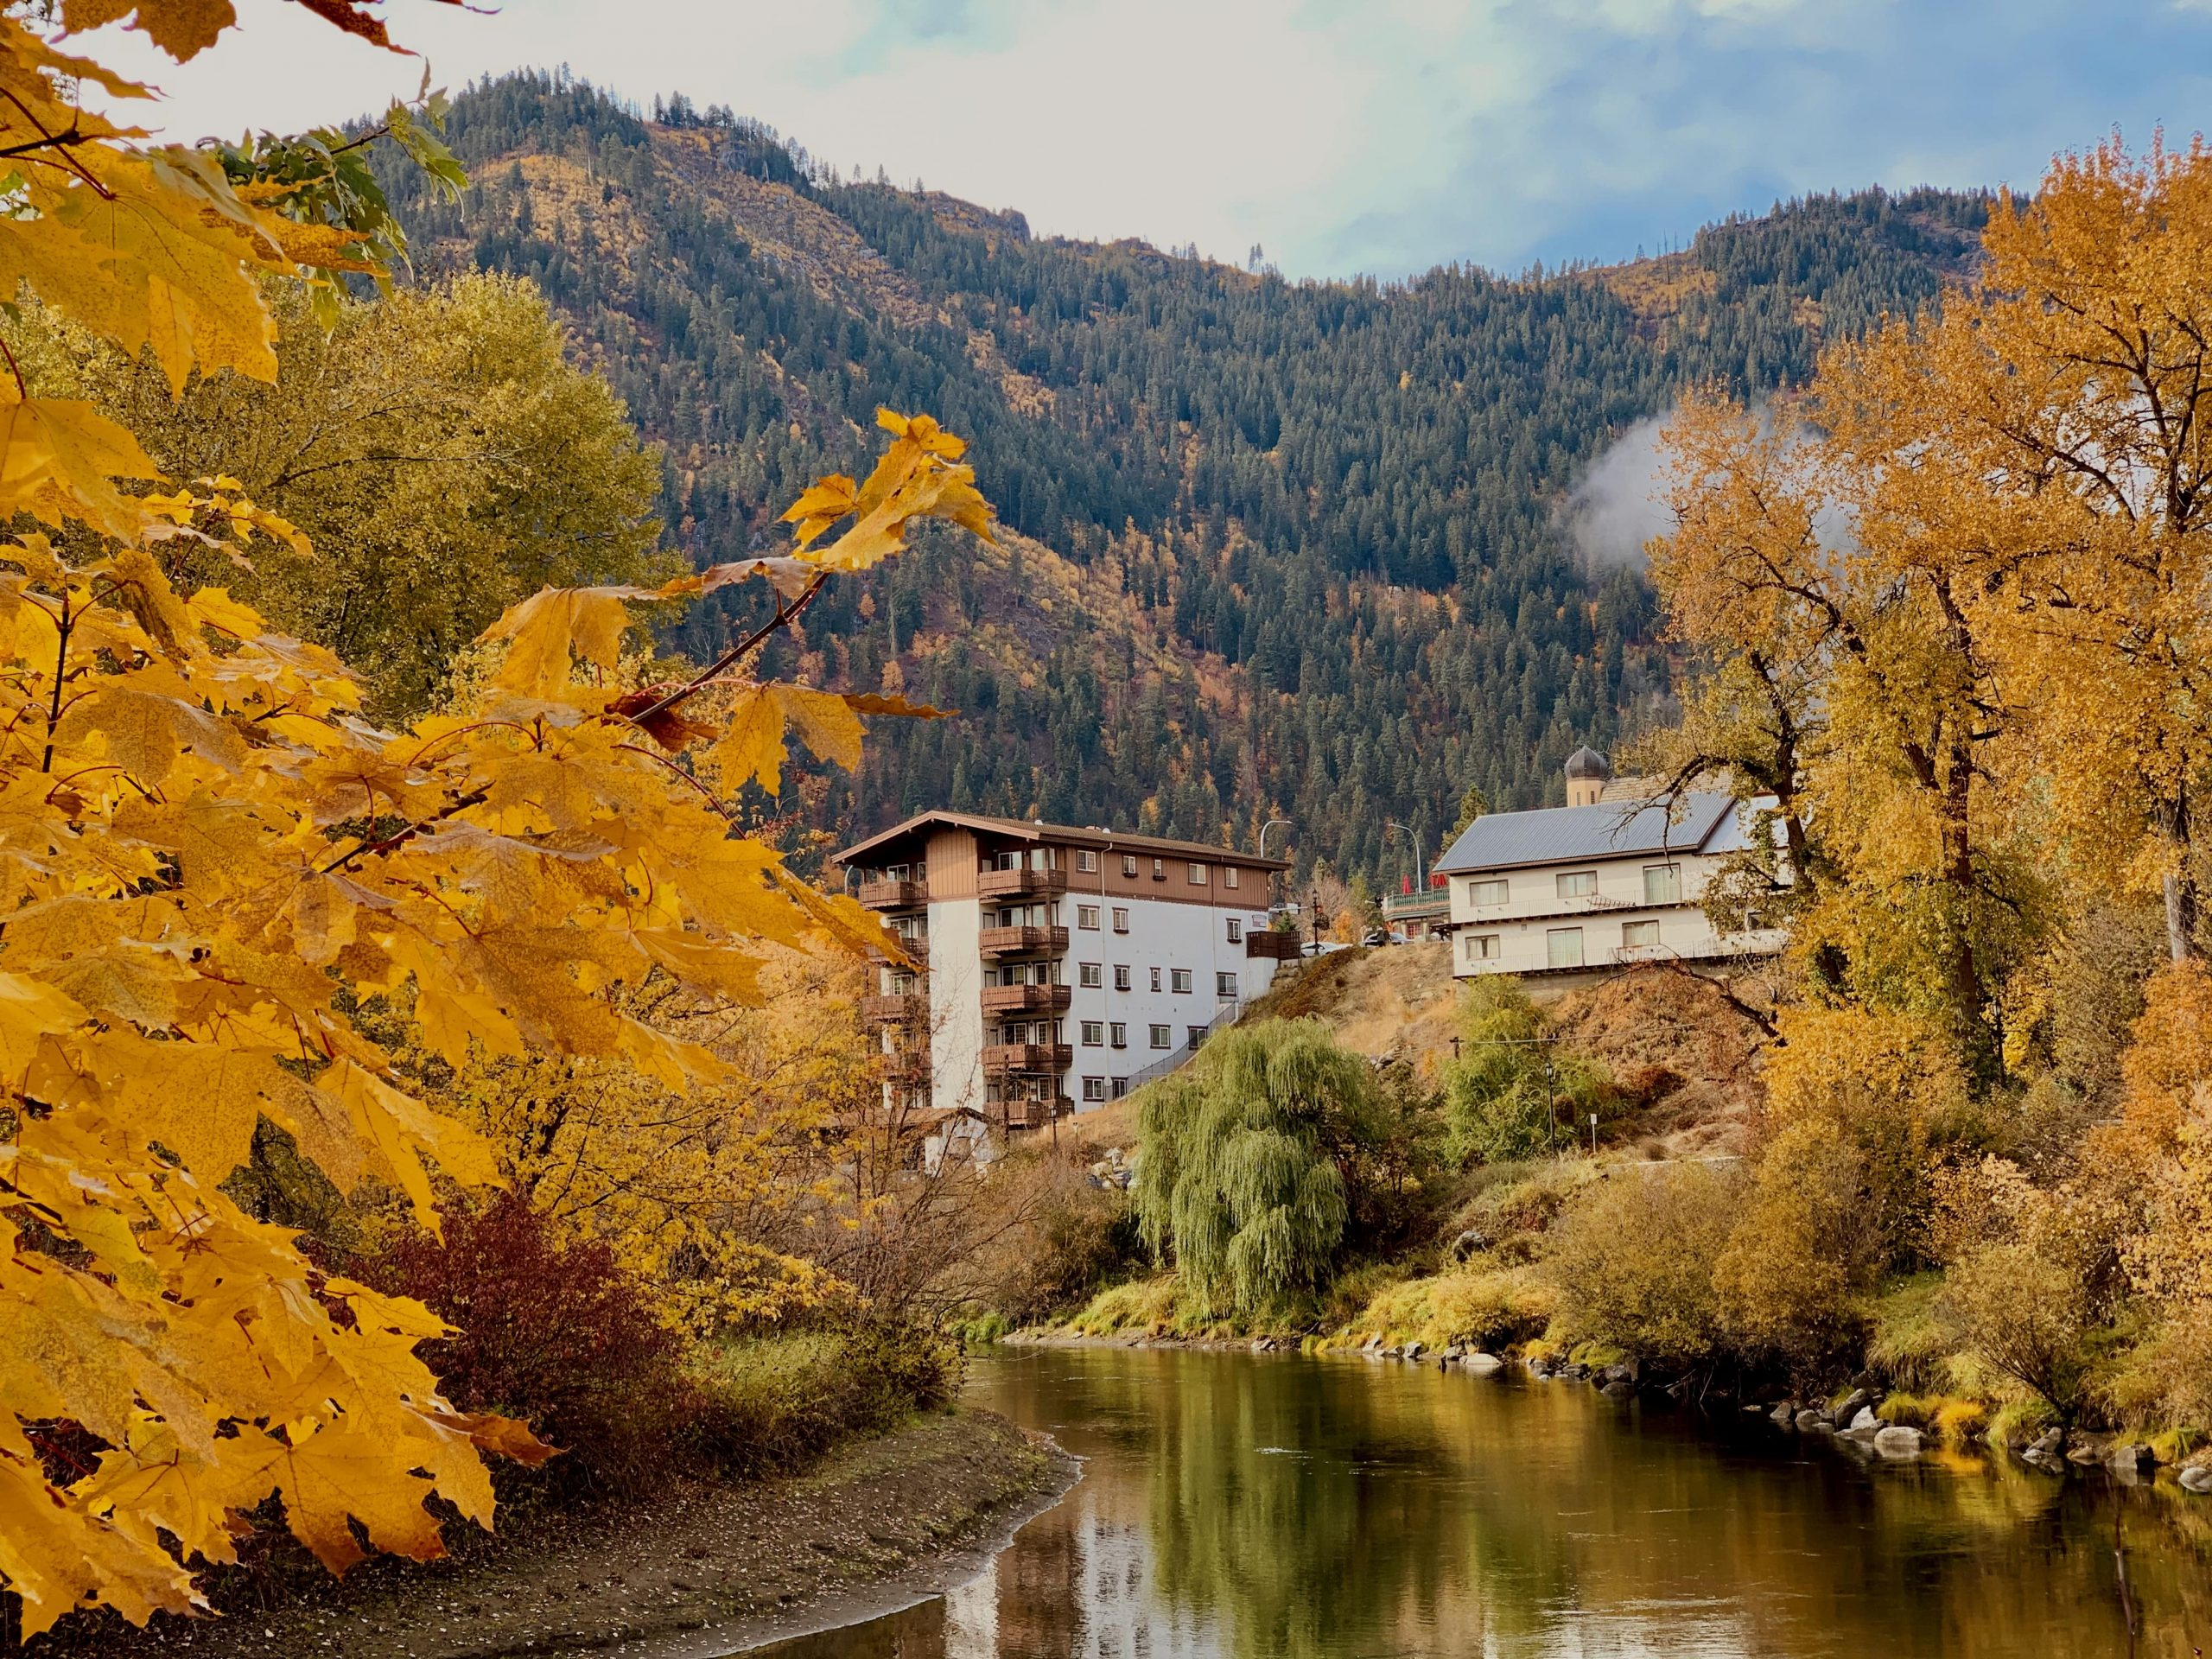 Fall colors and foliage from the waterfront park in Leavenworth, Washington